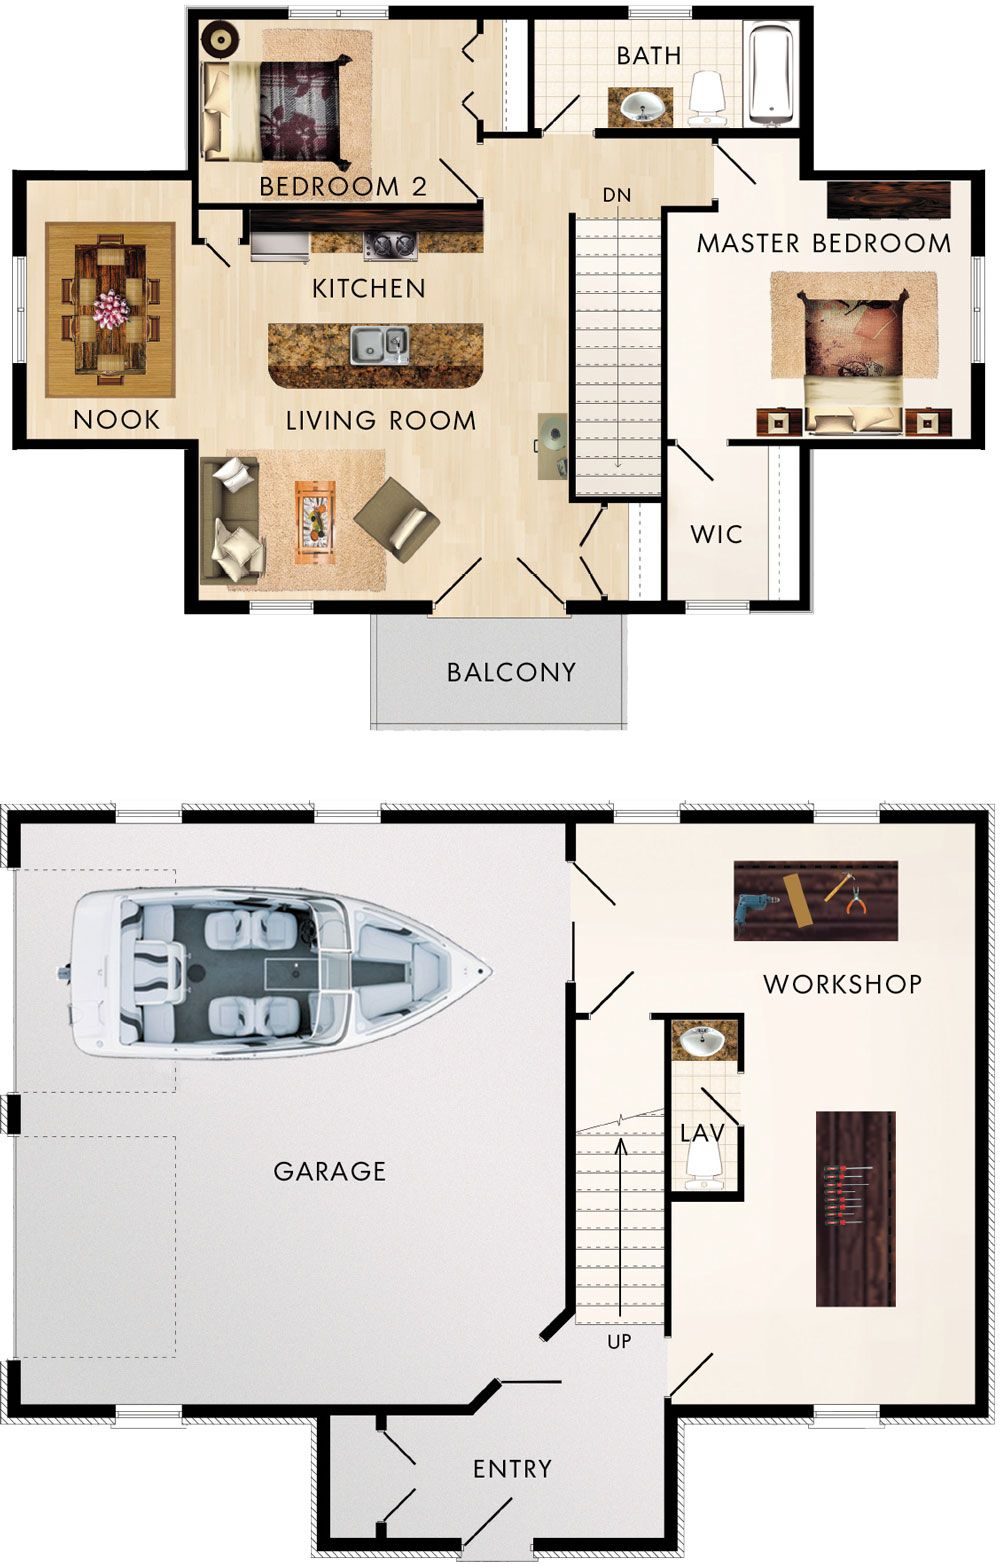 2 bedroom loft  bay garage with space for large vehicles and has a separate